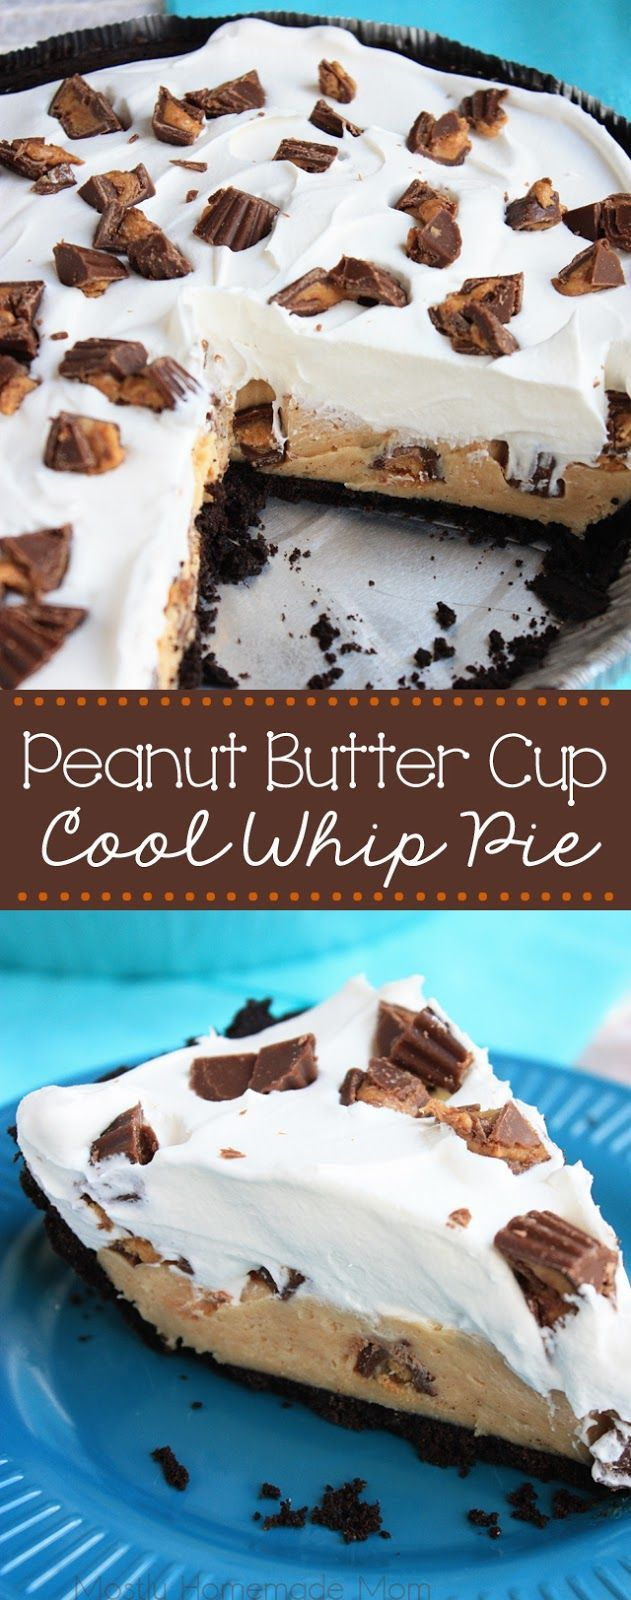 Peanut Butter Cup Cool Whip Pie - Cream cheese and peanut butter layered with whipped cream and chopped Reese's Cup minis in a chocolate Oreo cookie crust - the perfect, no bake dessert!